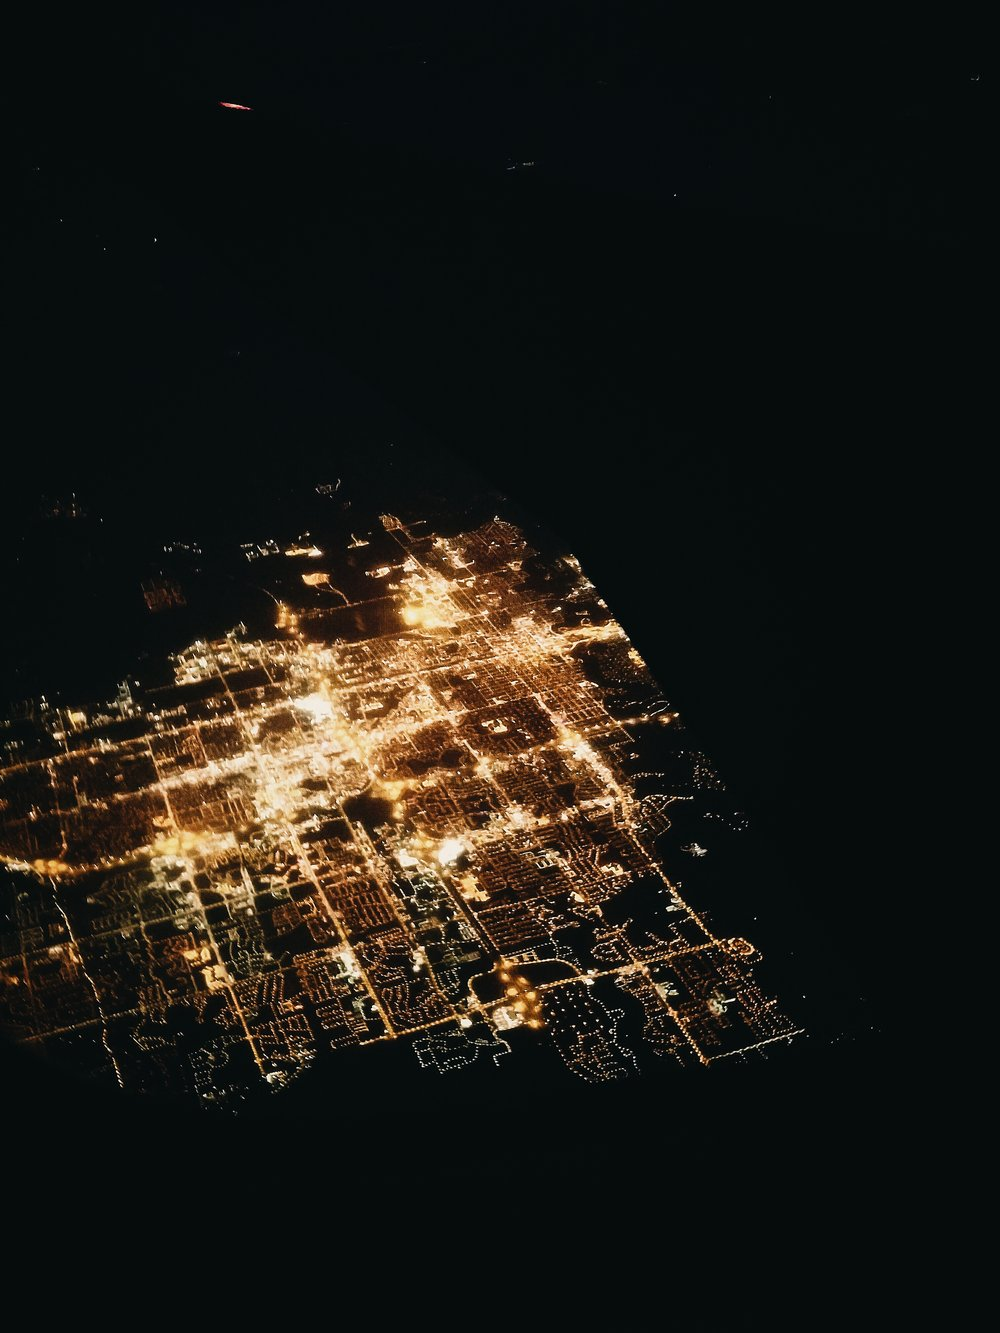 One of my favorite pictures from my overnight flight back from Spokane back in January. City lights are one of my favorite air-time sights.